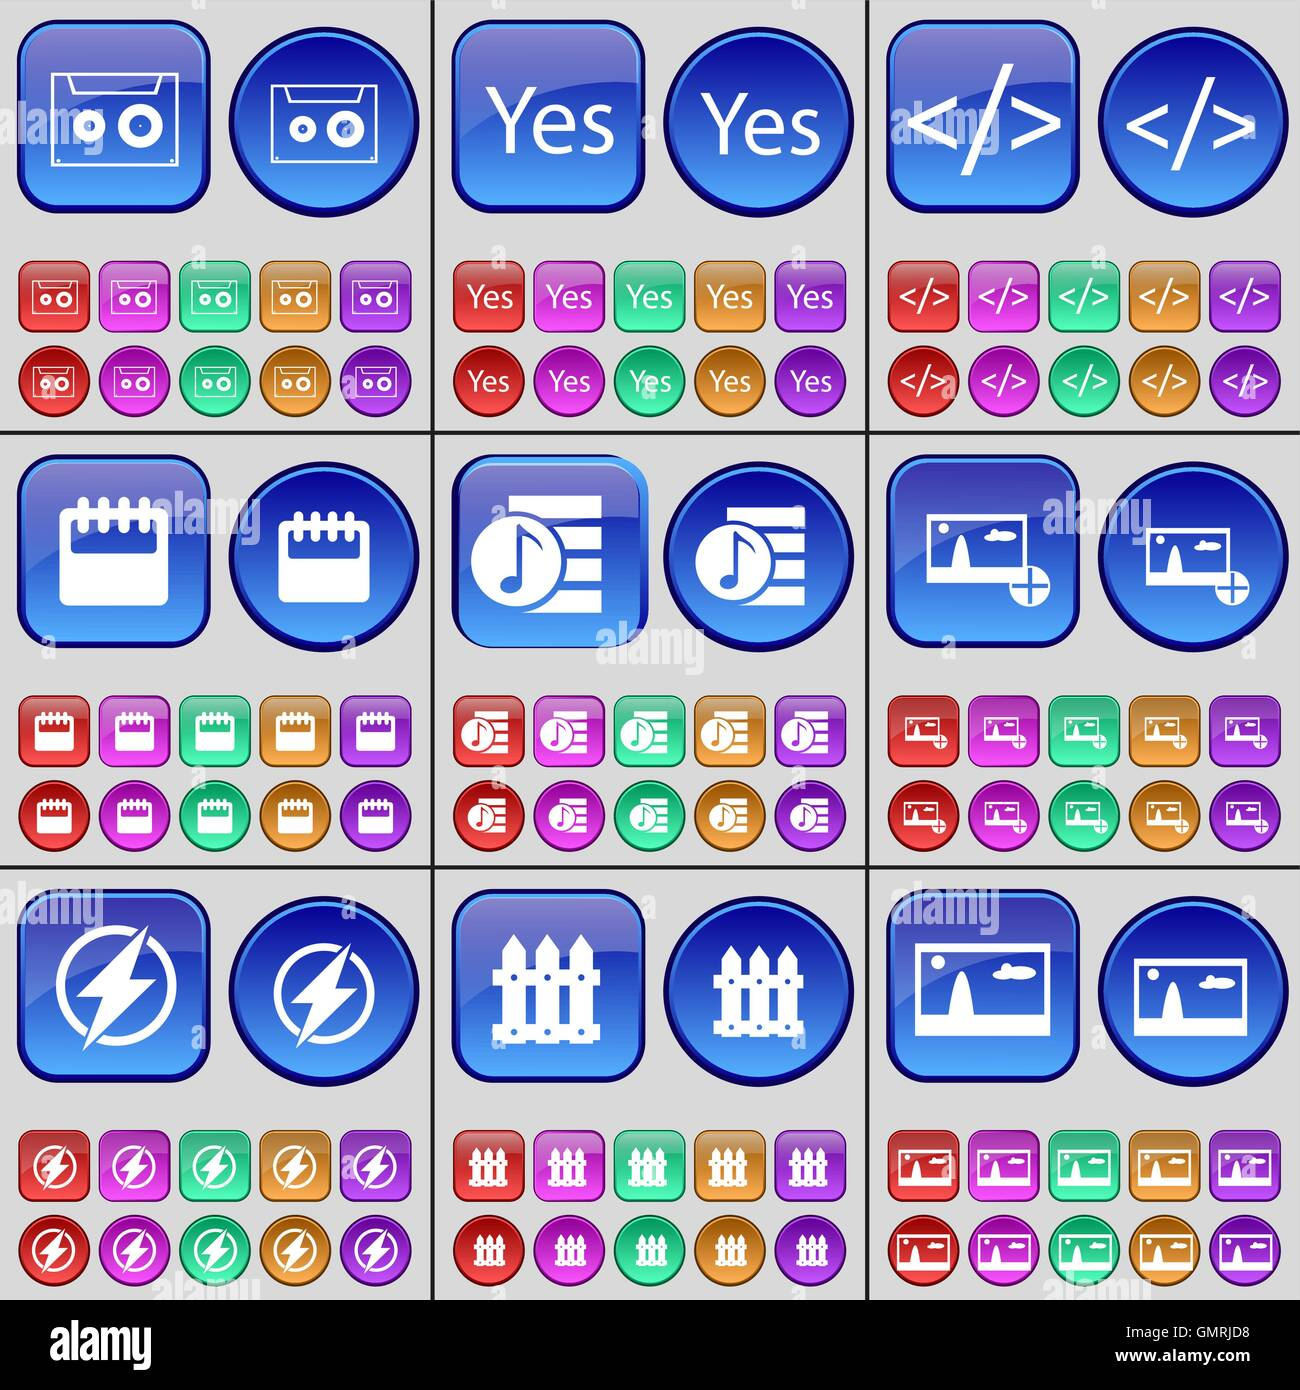 Cassette, Yes, Codem, Calendar, Playlist, Picture, Flash, Fence. A large set of multi-colored buttons. Vector - Stock Image